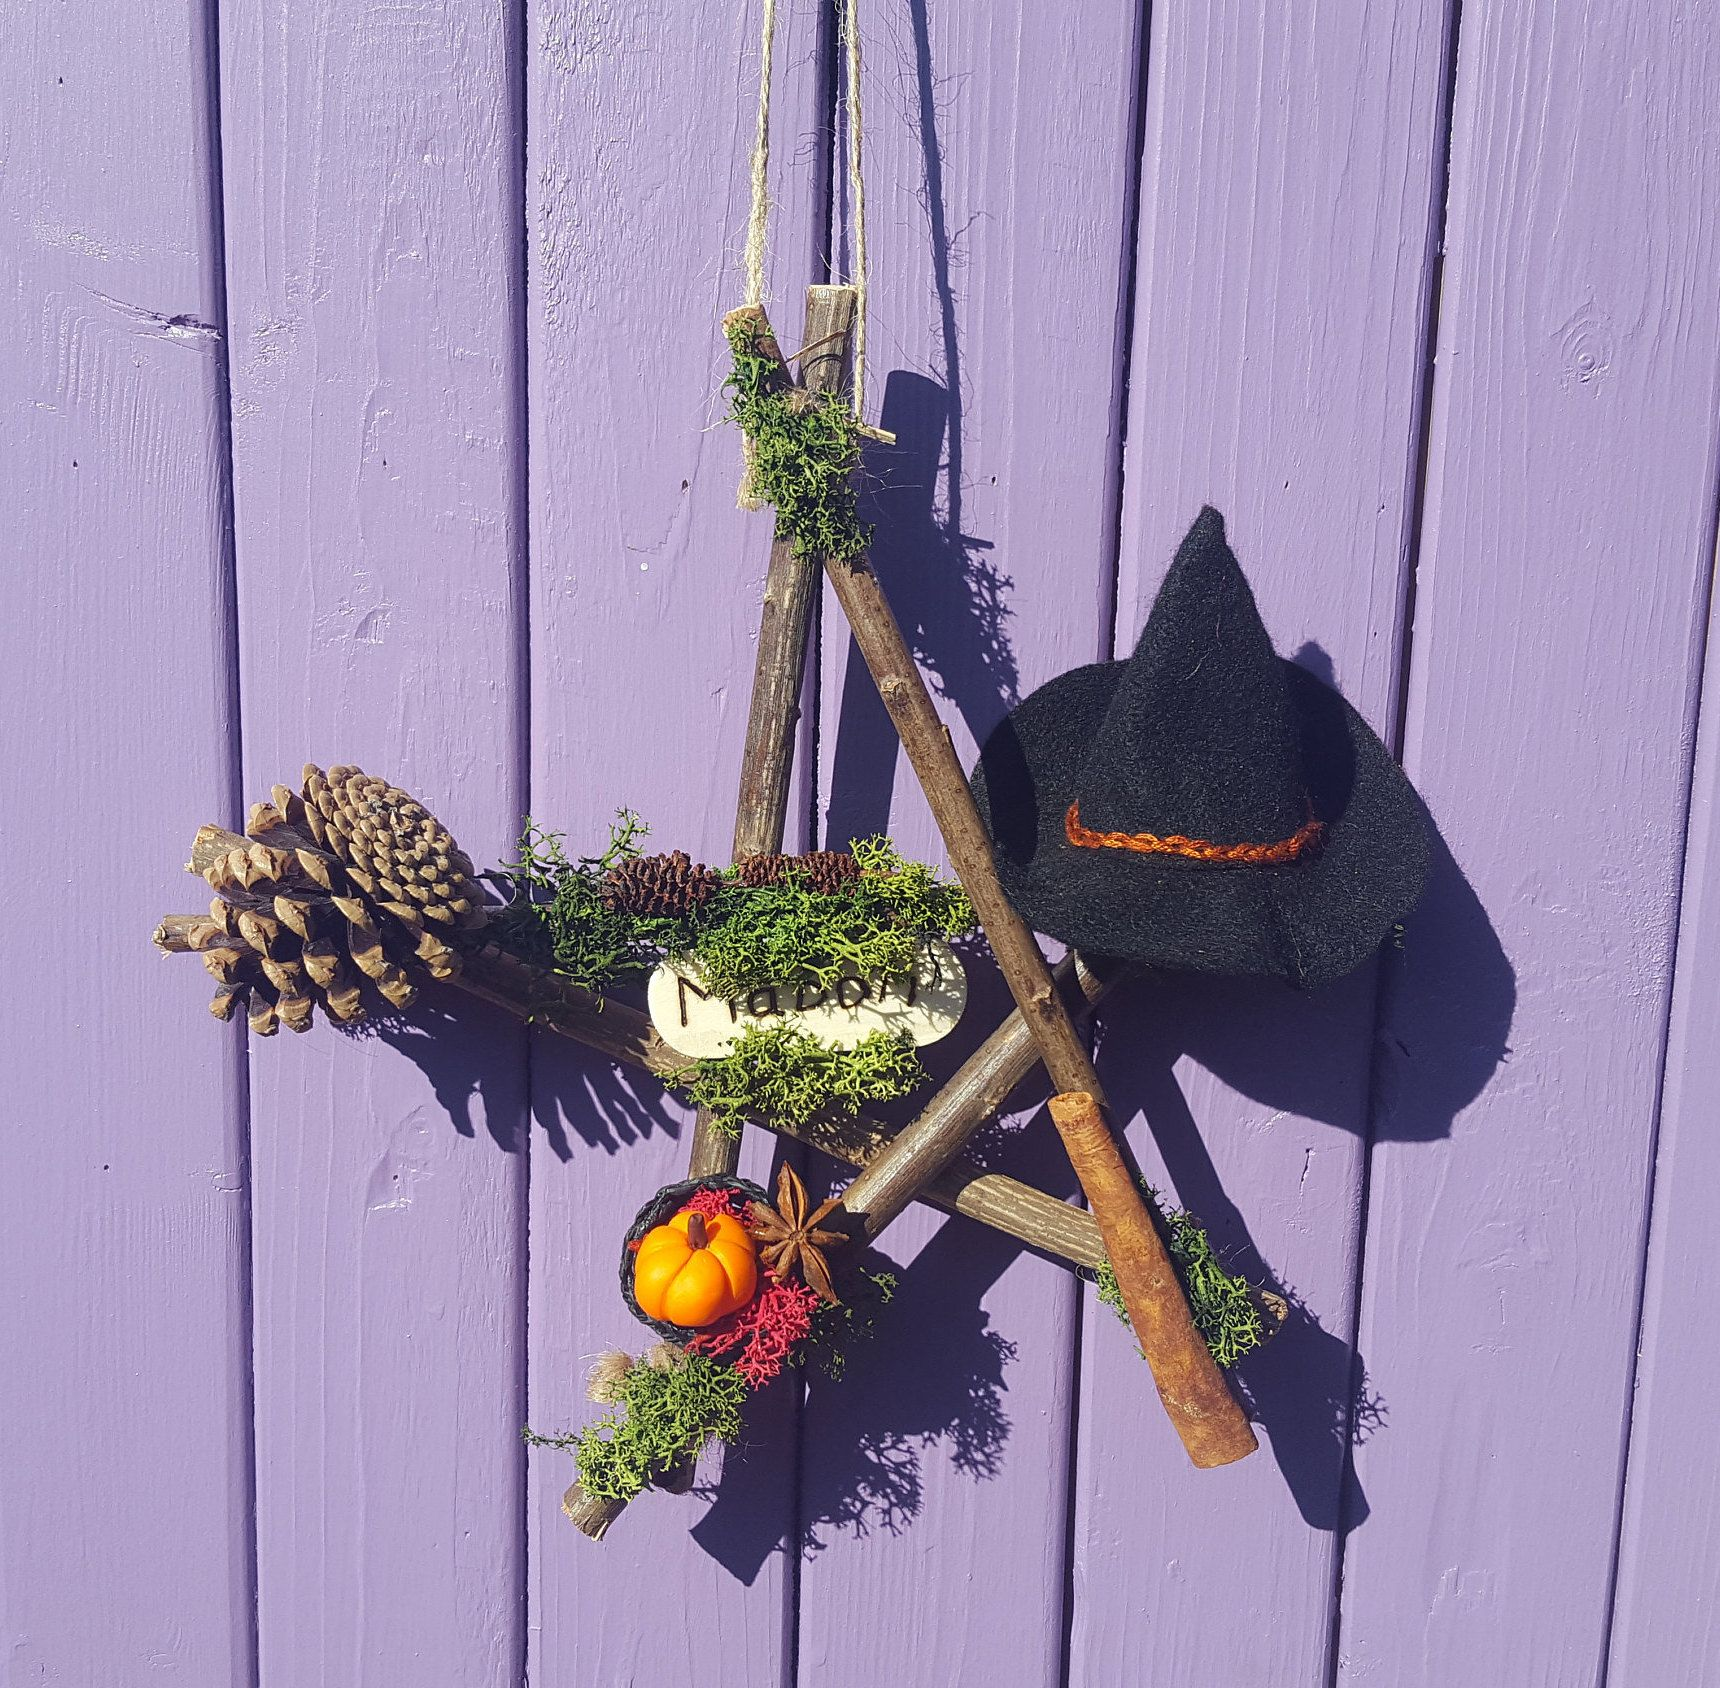 Mabon Witch Pentacle, Willow Pentagram, Witchy Felt Hat, Autumn Pine Cones, Polymer Clay Pumpkin, Harvest Basket, Autumnal Equinox, Cinnamon #autumnalequinox